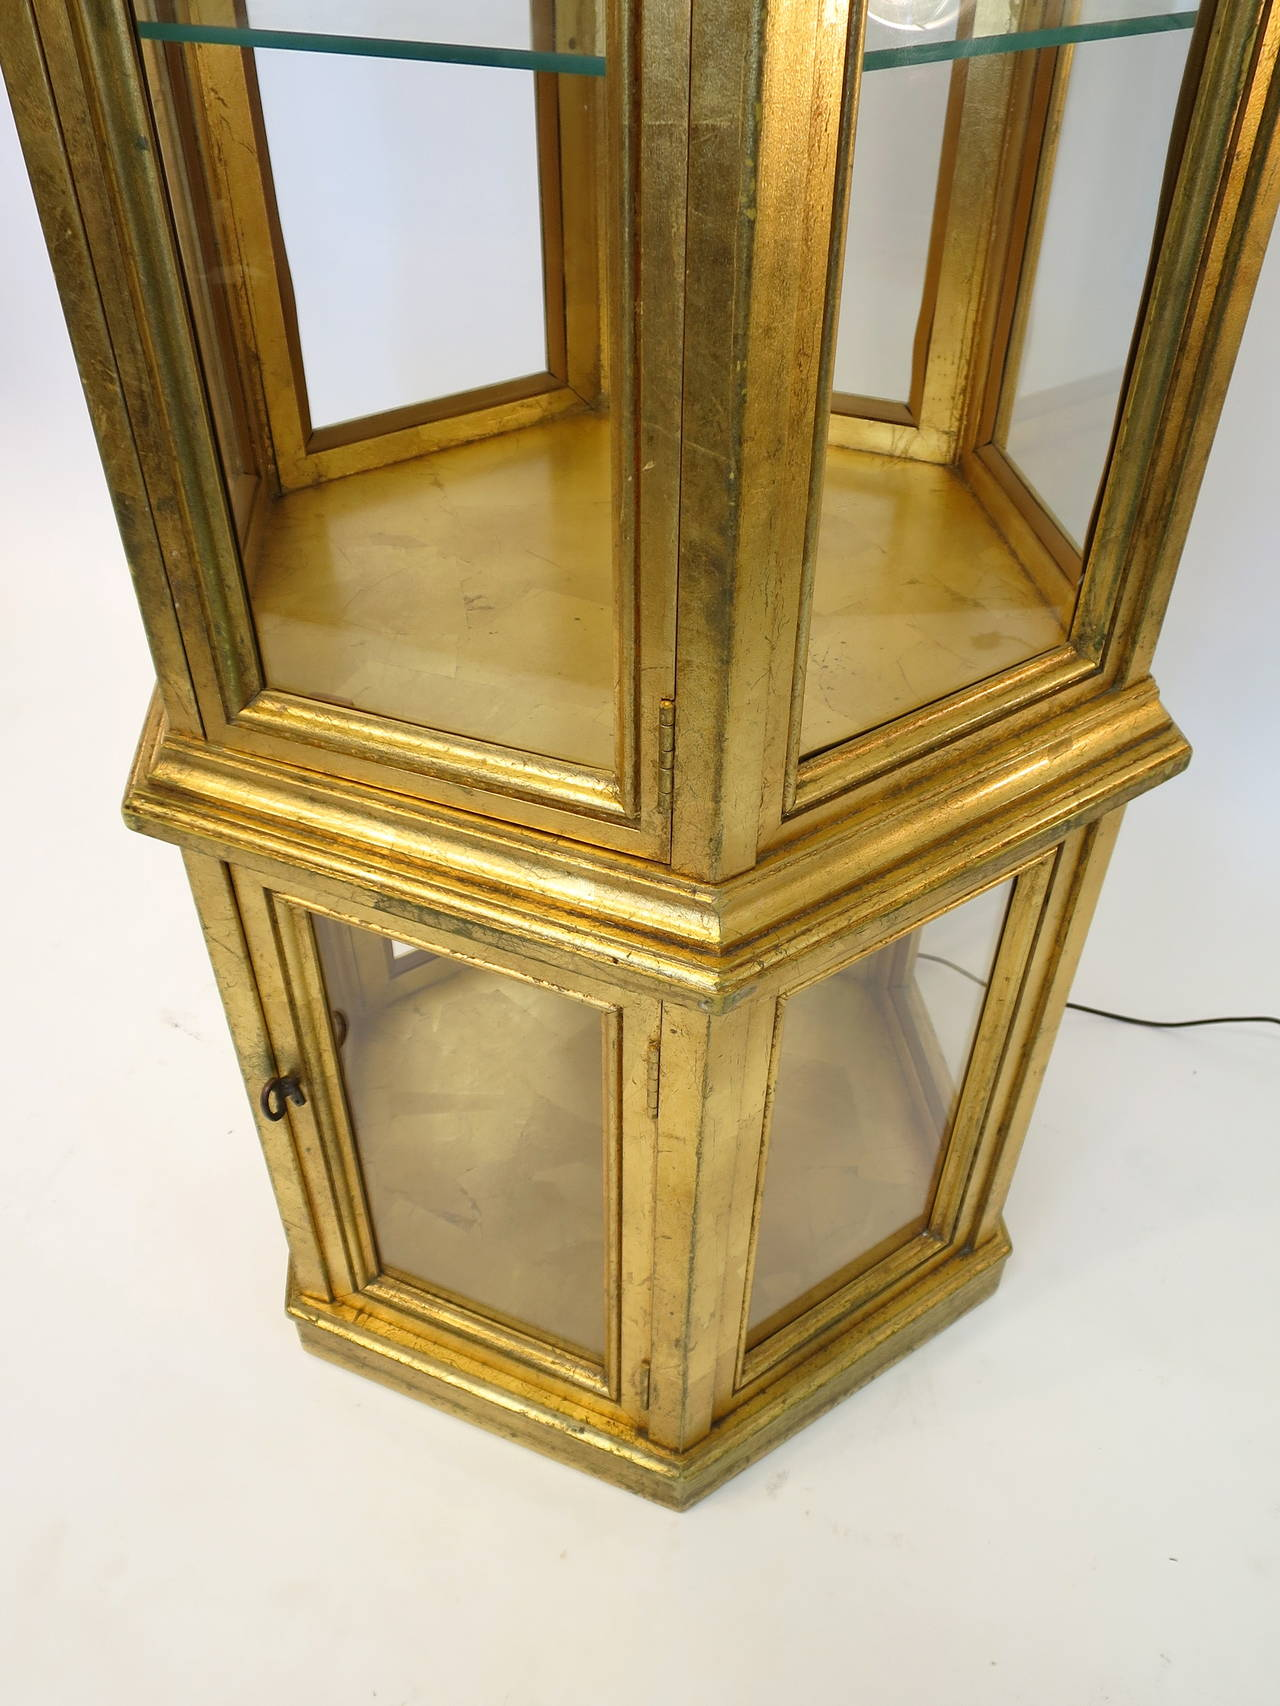 Weiman Furniture Company Gold Leaf Curio Cabinet Or Vitrine At 1stdibs